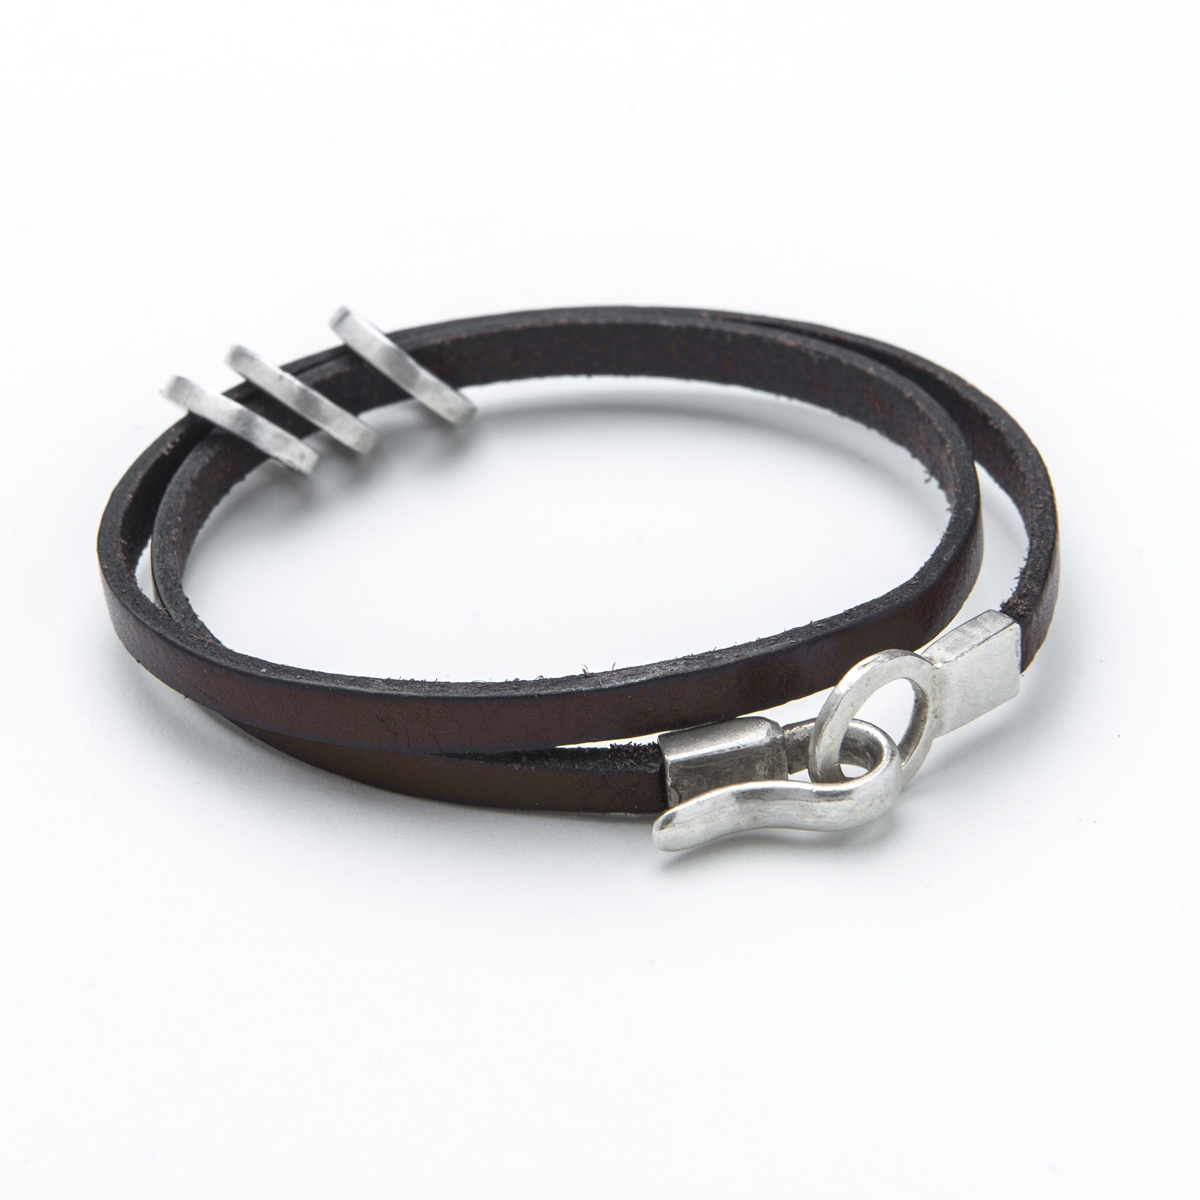 leather and Silver Men's bracelet Can be personalised with words of your choosing. the perfect gift for the man in your life.